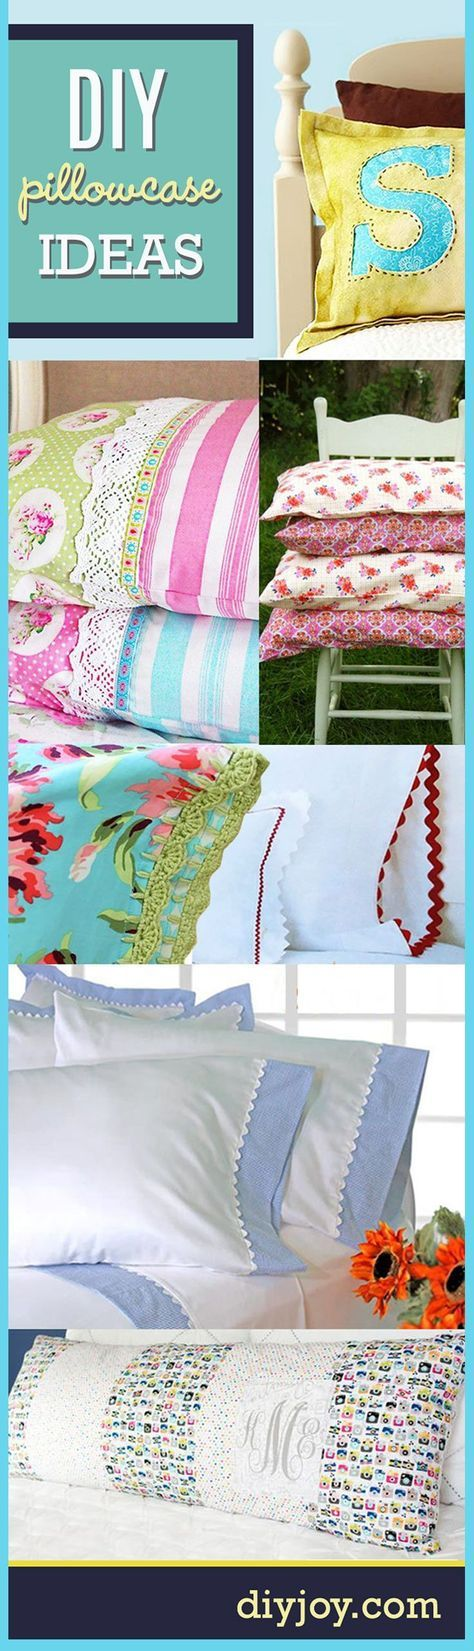 14 diy pillowcases youll fall in love with diy pillowcases and diy sewing projects for pillows easy and creative do it yourself bedroom solutioingenieria Gallery